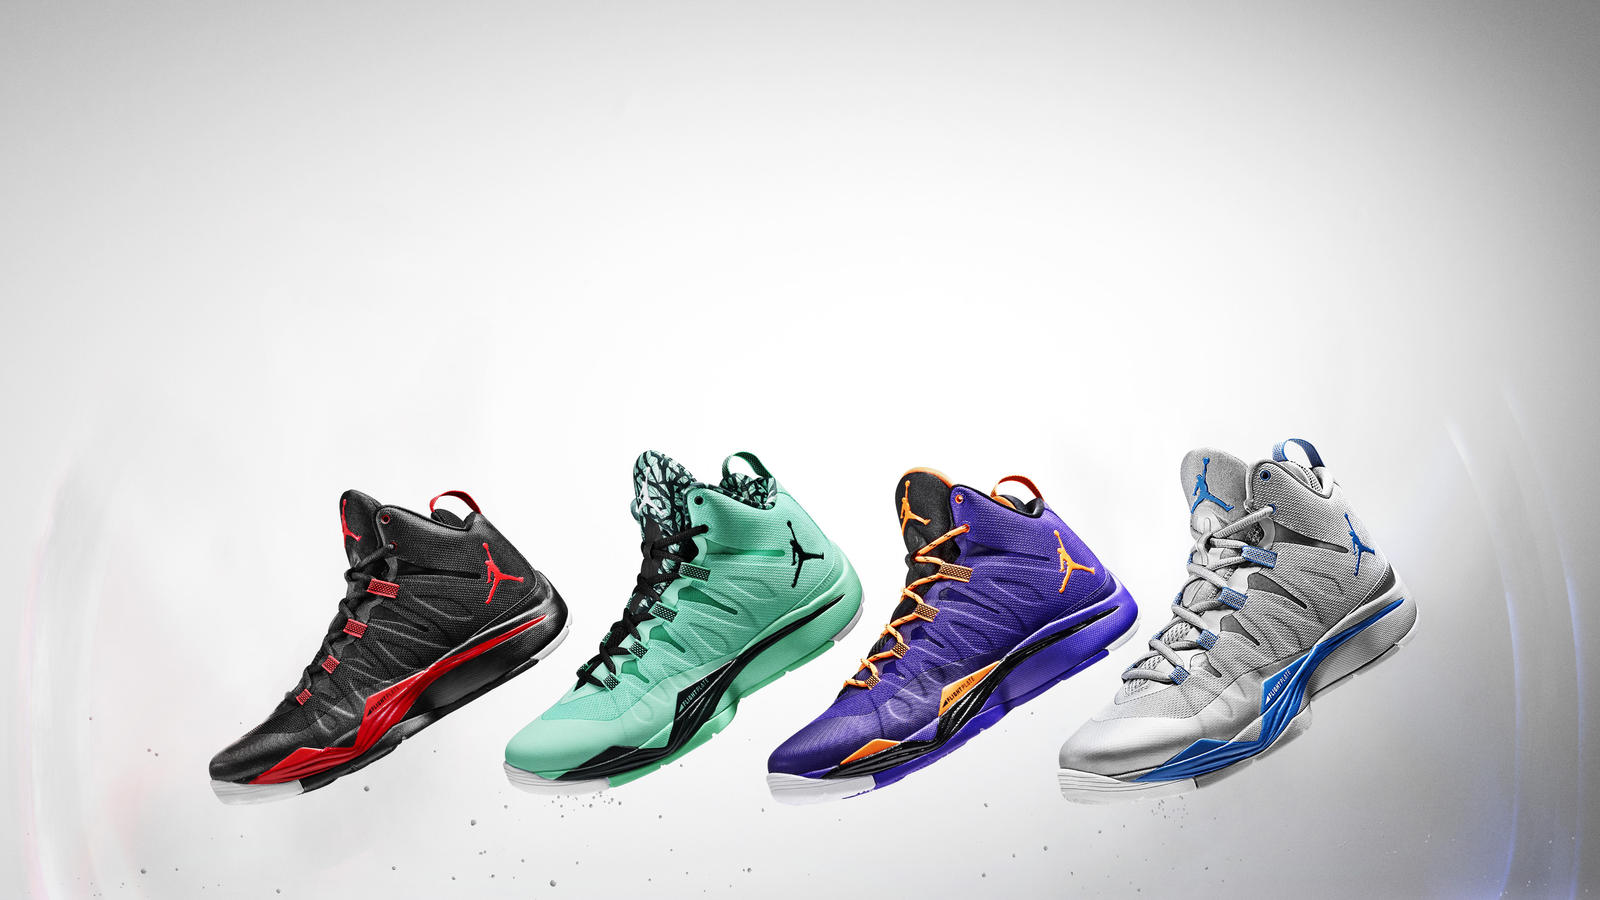 blake griffin jordan shoes